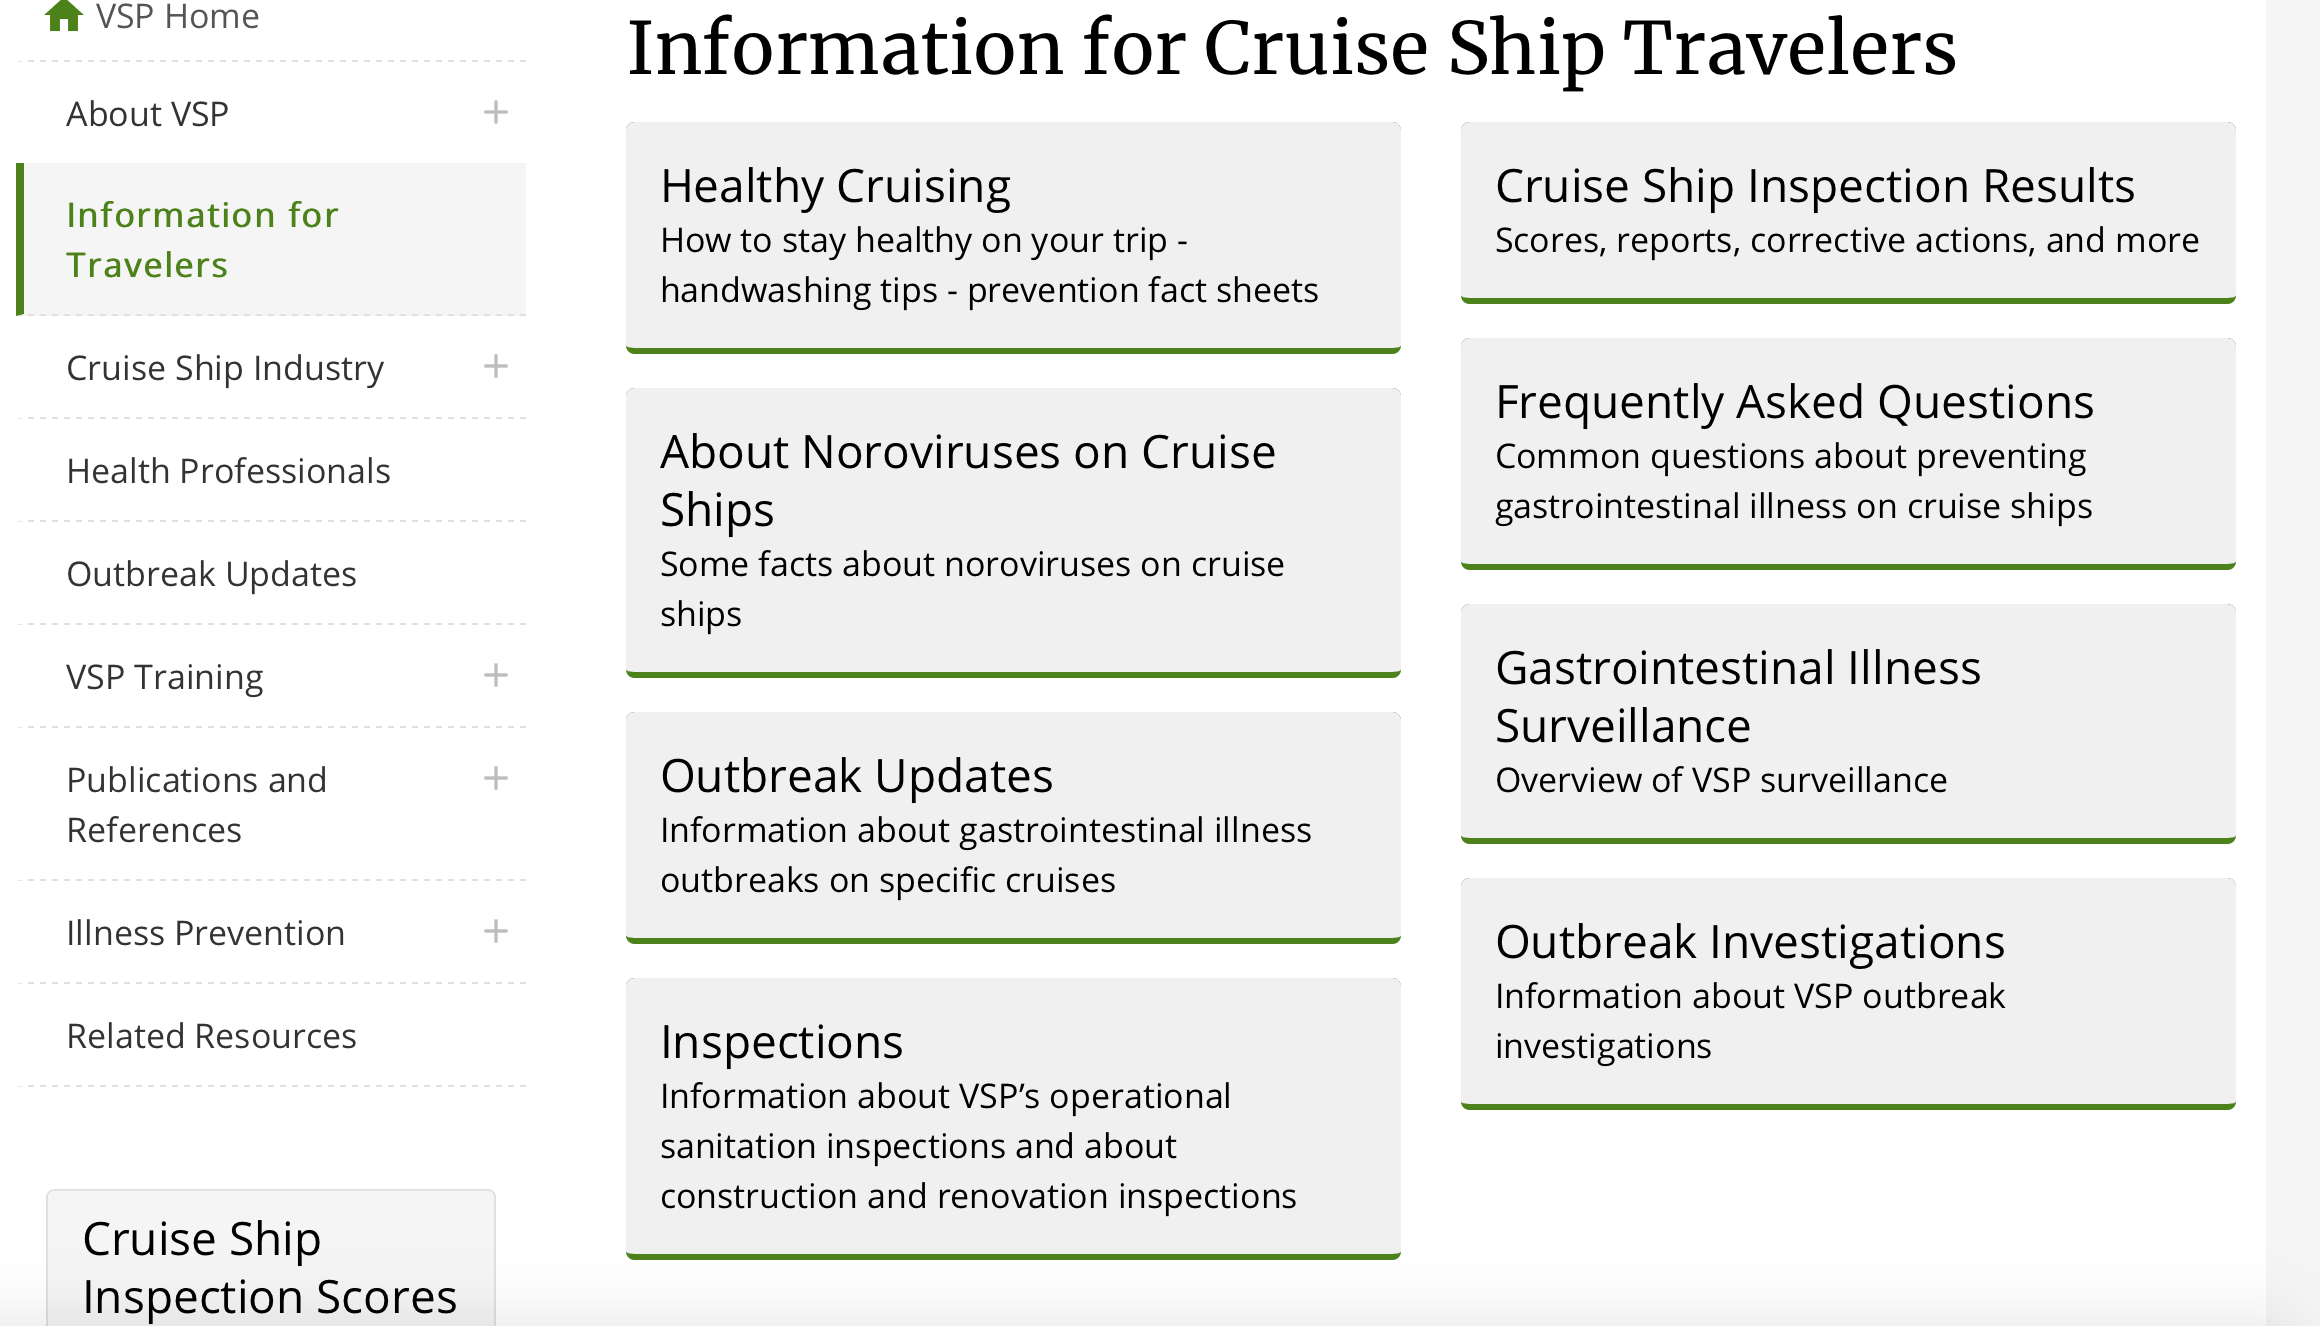 Healthy cruising tips from CDC